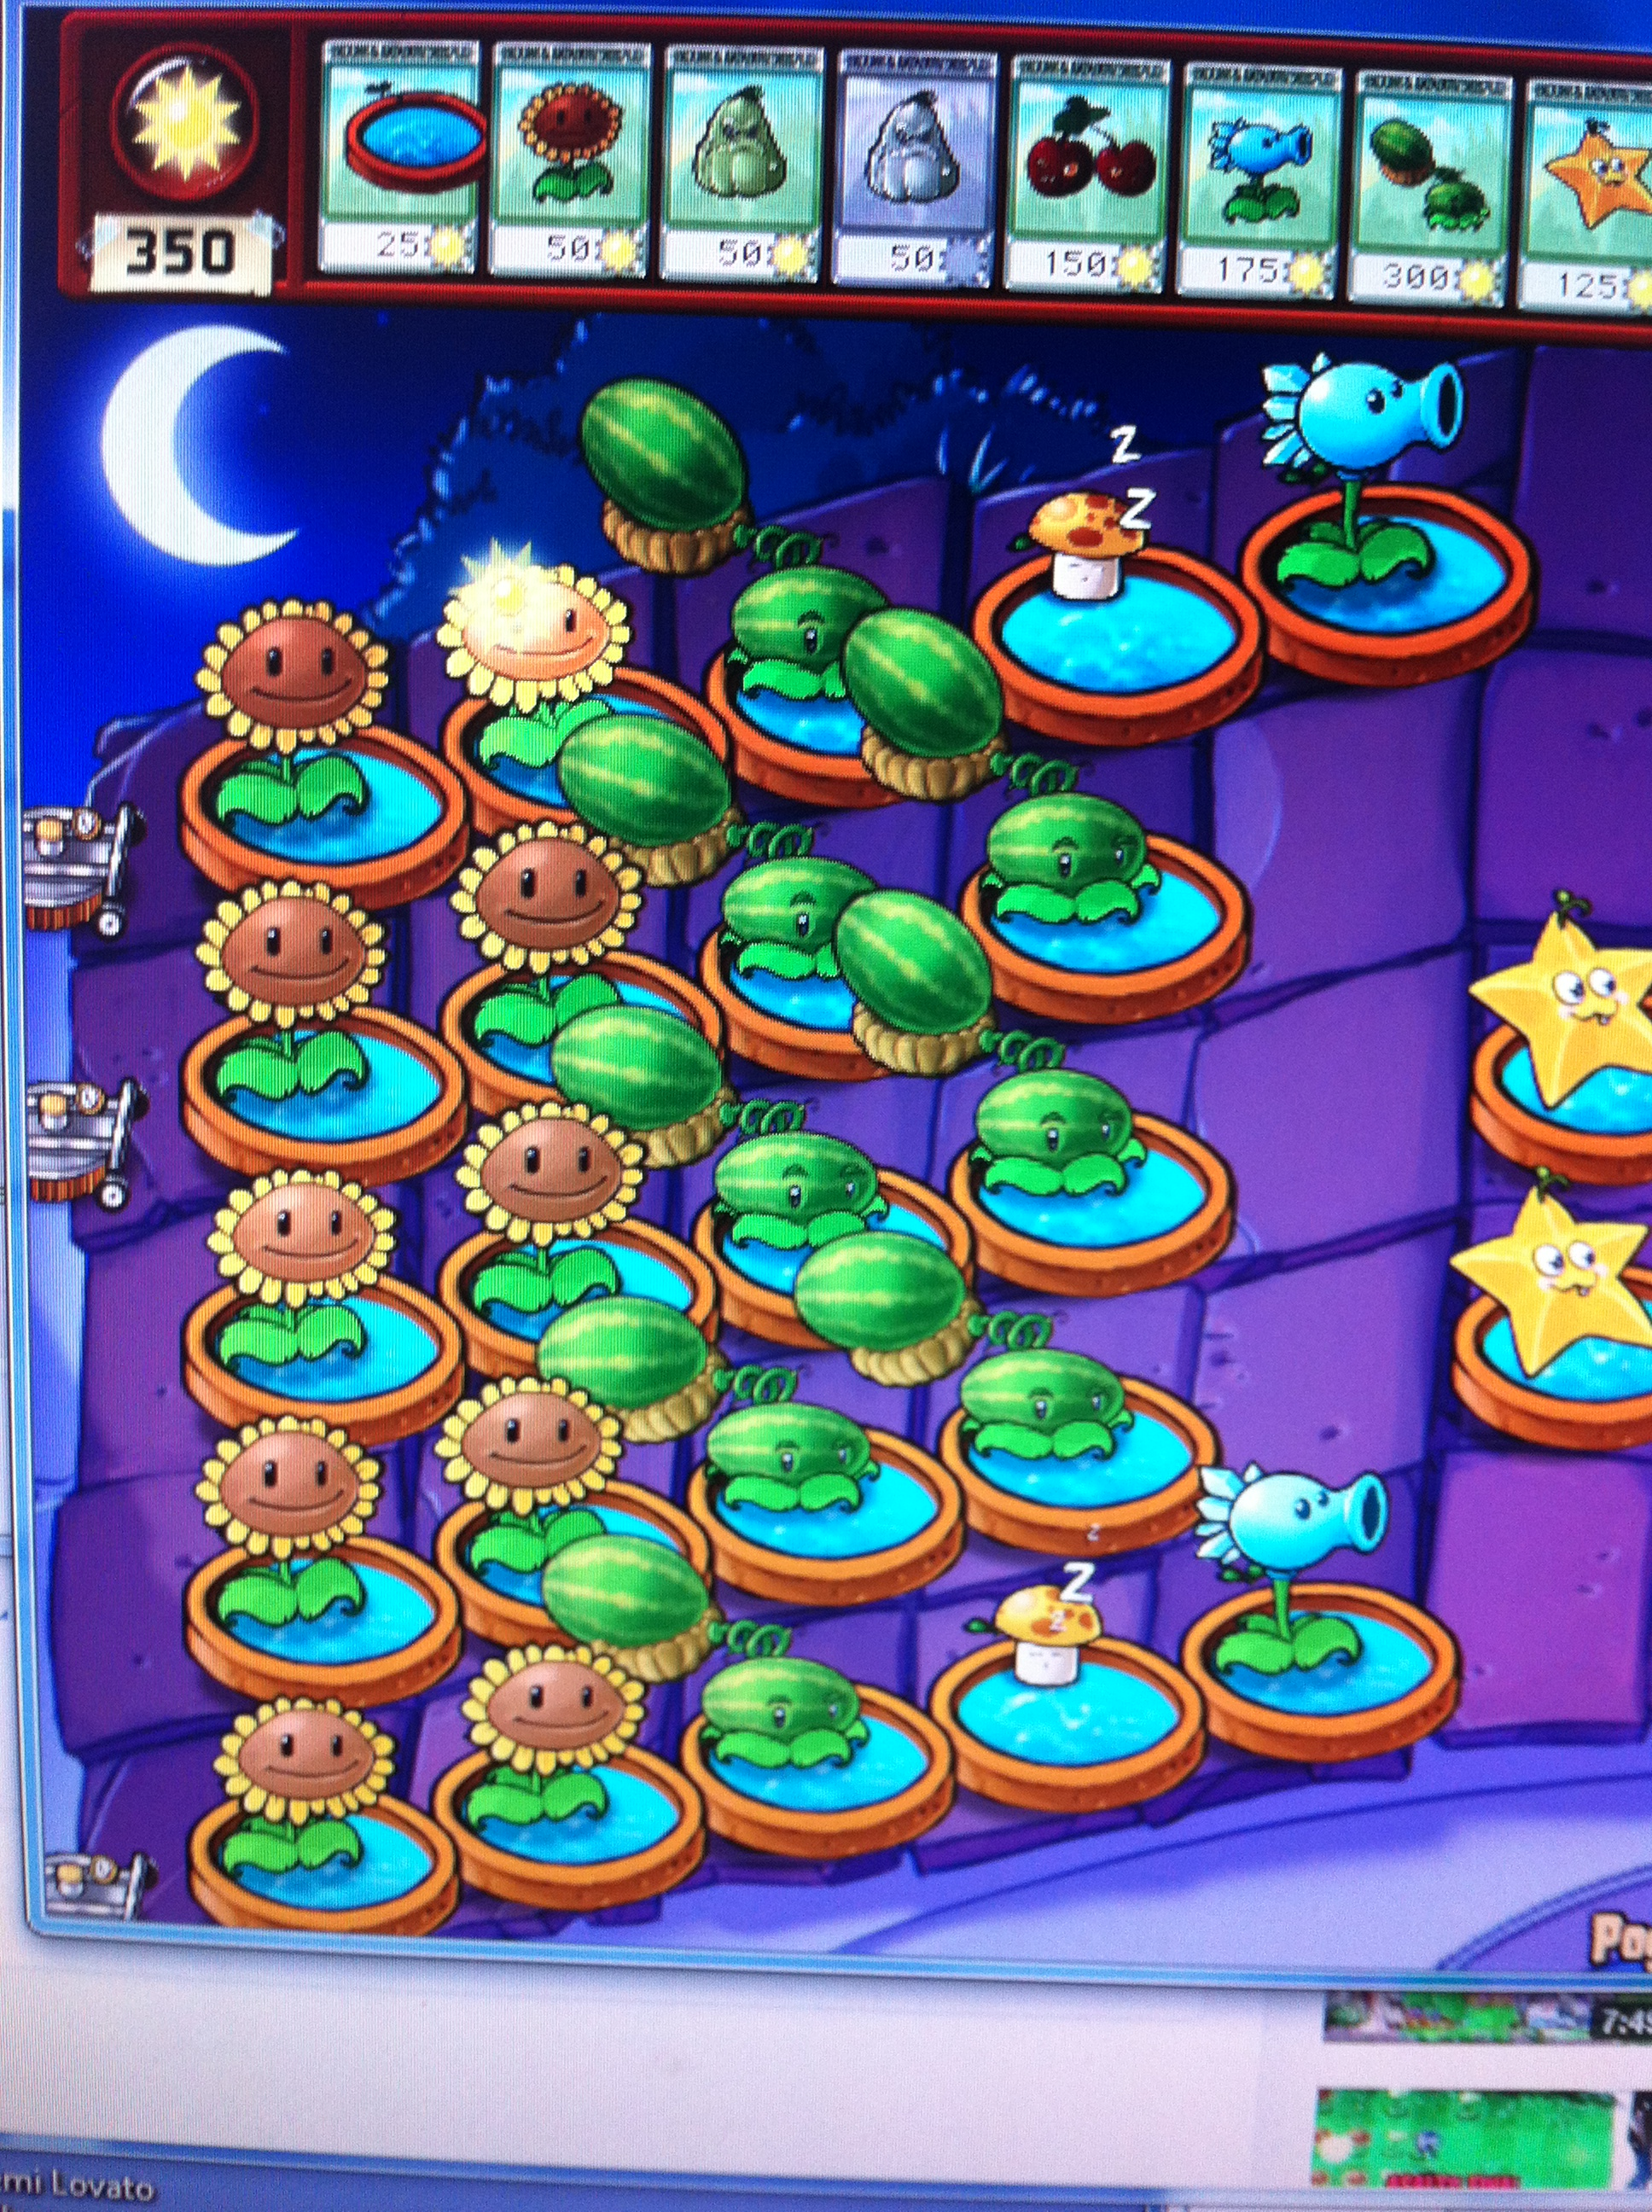 Modify plants vs zombies plants vs zombies wiki fandom powered img 1221 toneelgroepblik Image collections